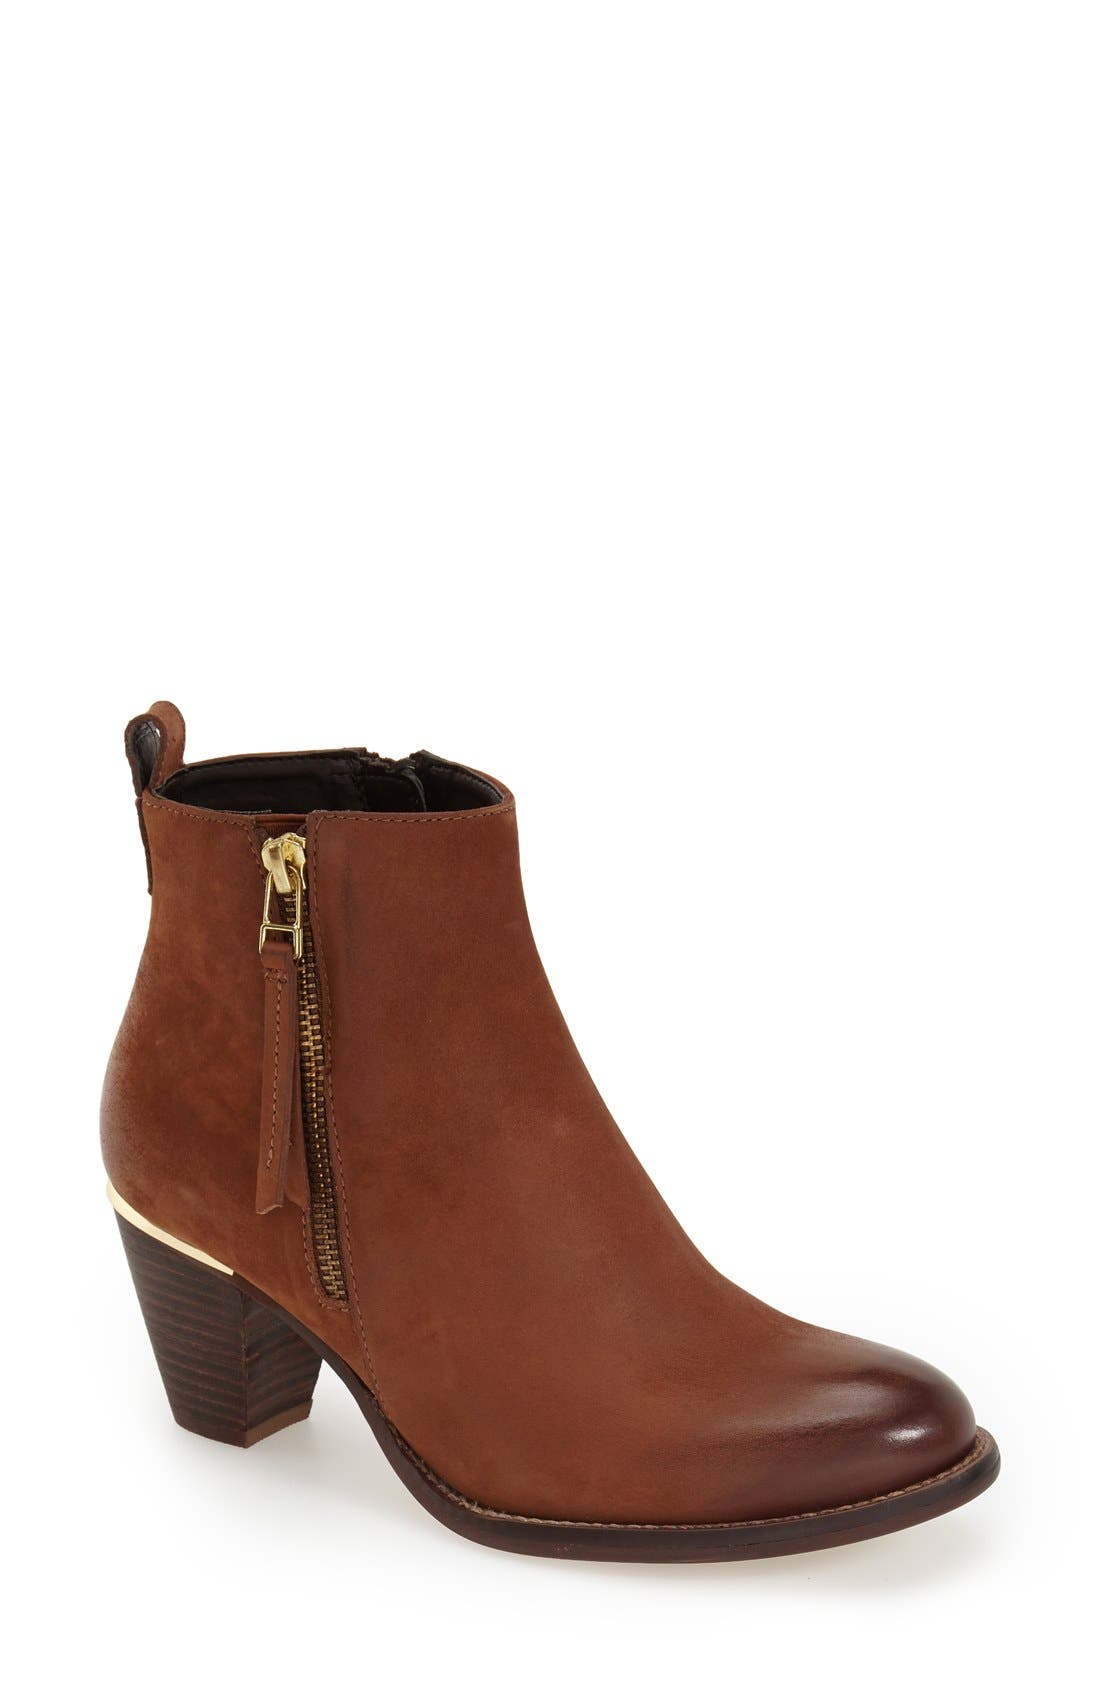 Main Image - Steve Madden 'Wantagh' Leather Ankle Boot (Women)